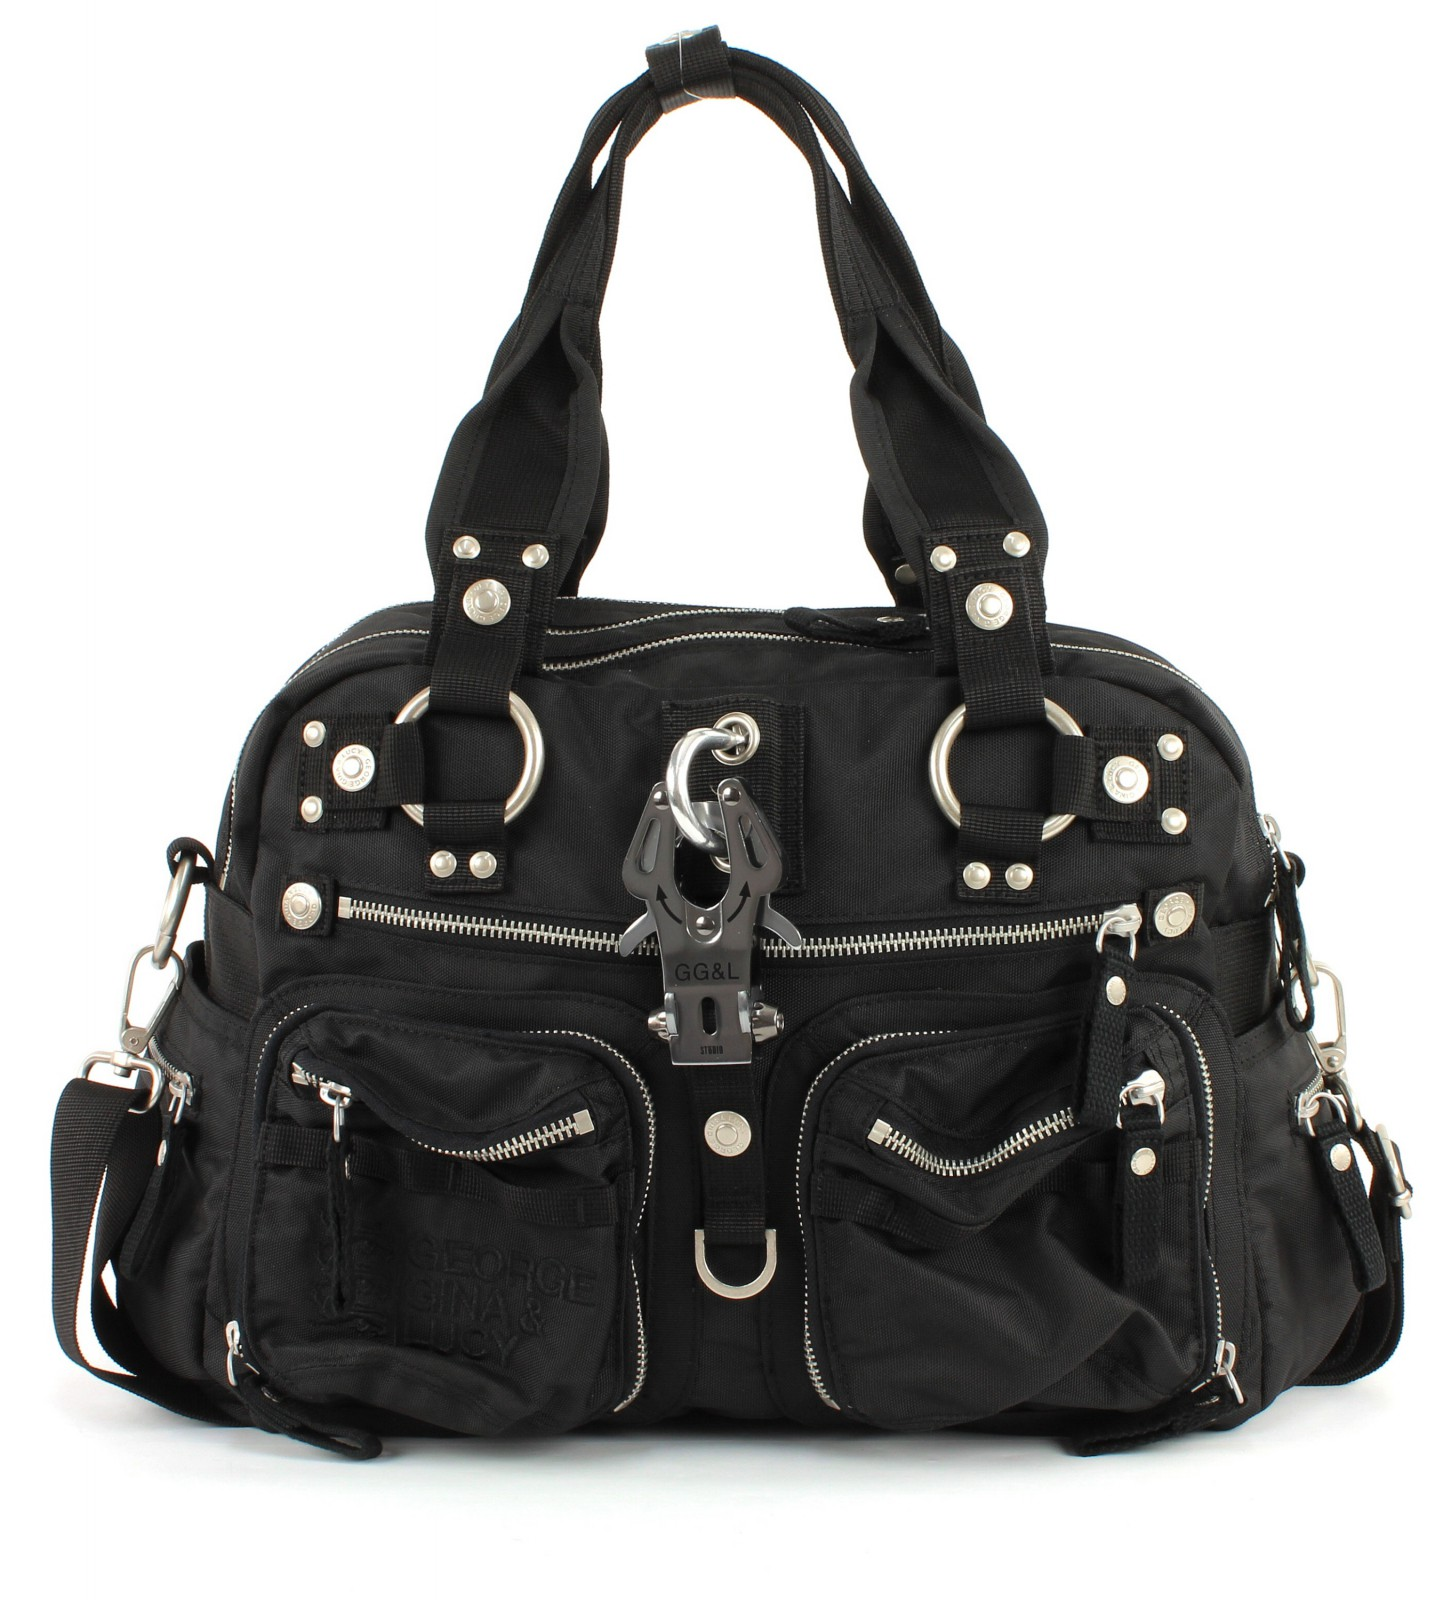 george gina lucy cross body bag nylon double b king kong. Black Bedroom Furniture Sets. Home Design Ideas